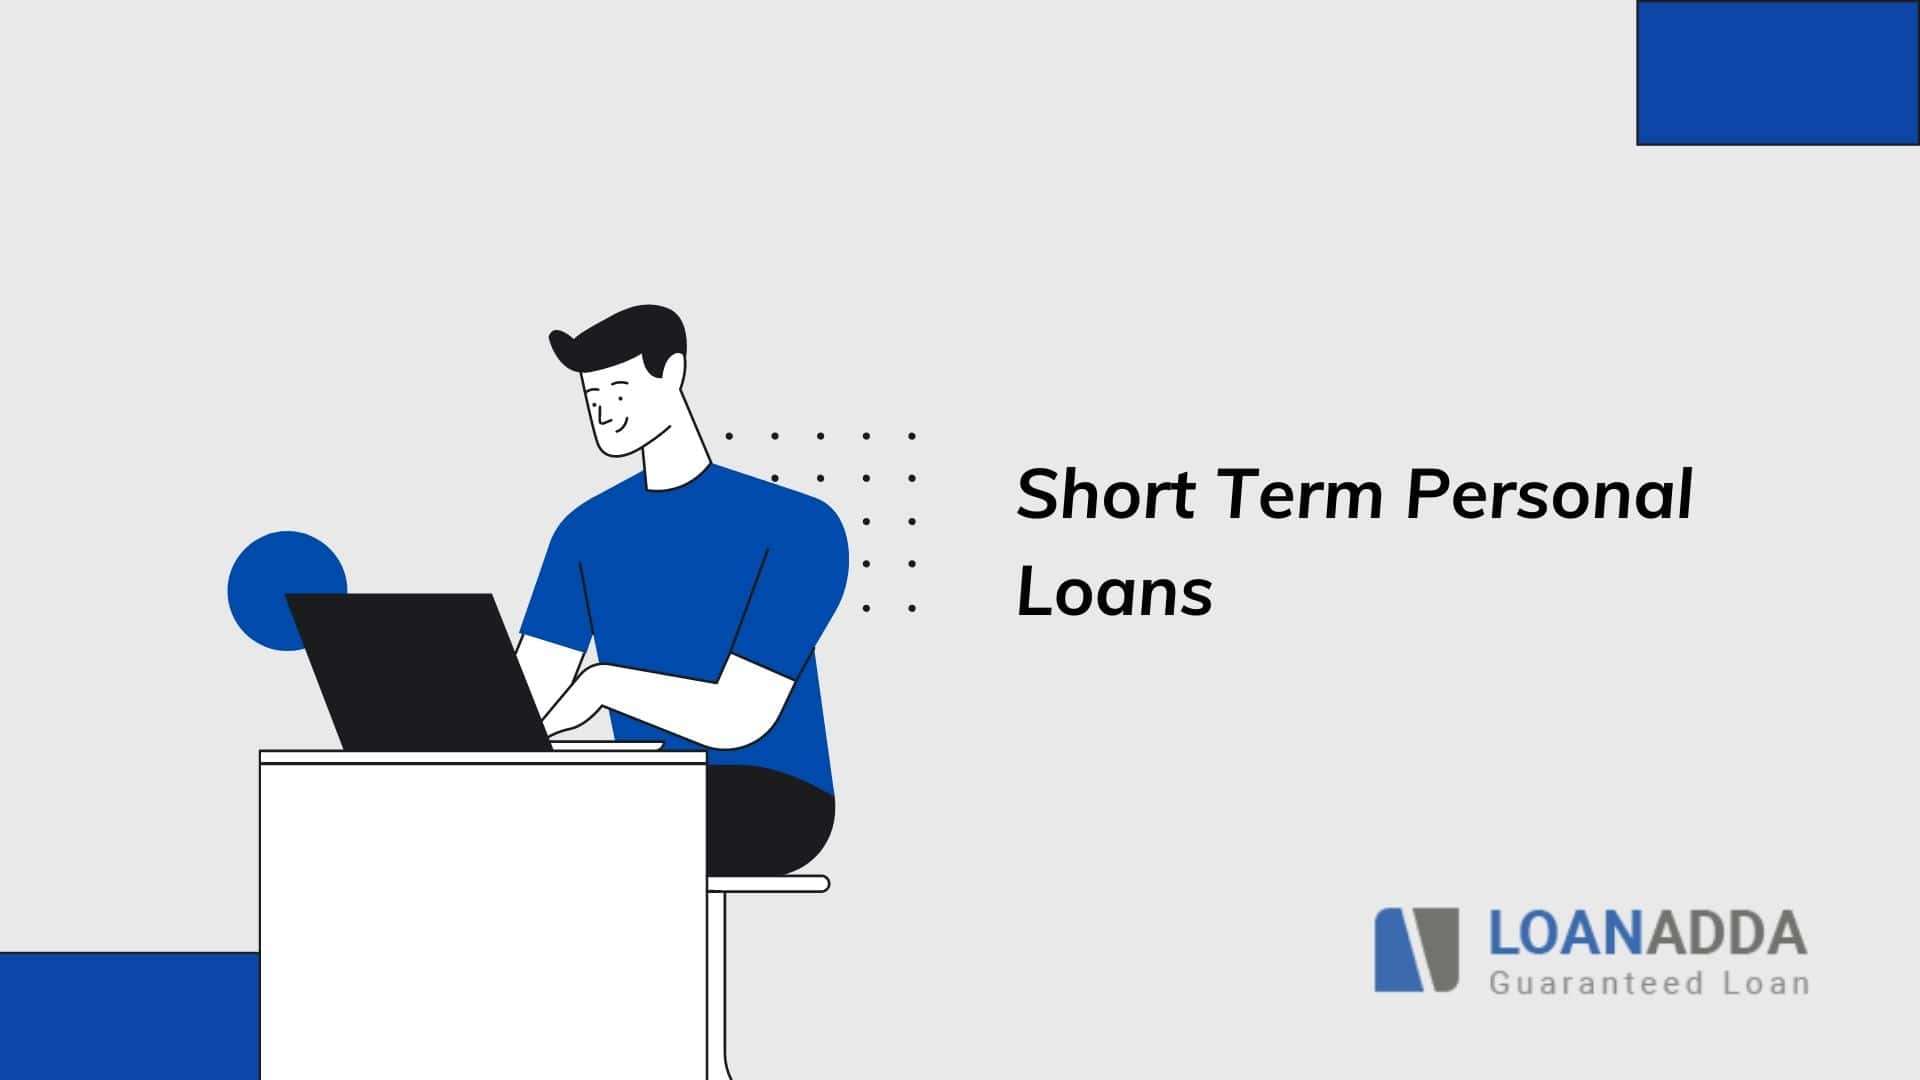 Short Term Personal Loan - Easy and Instant Online Approval!